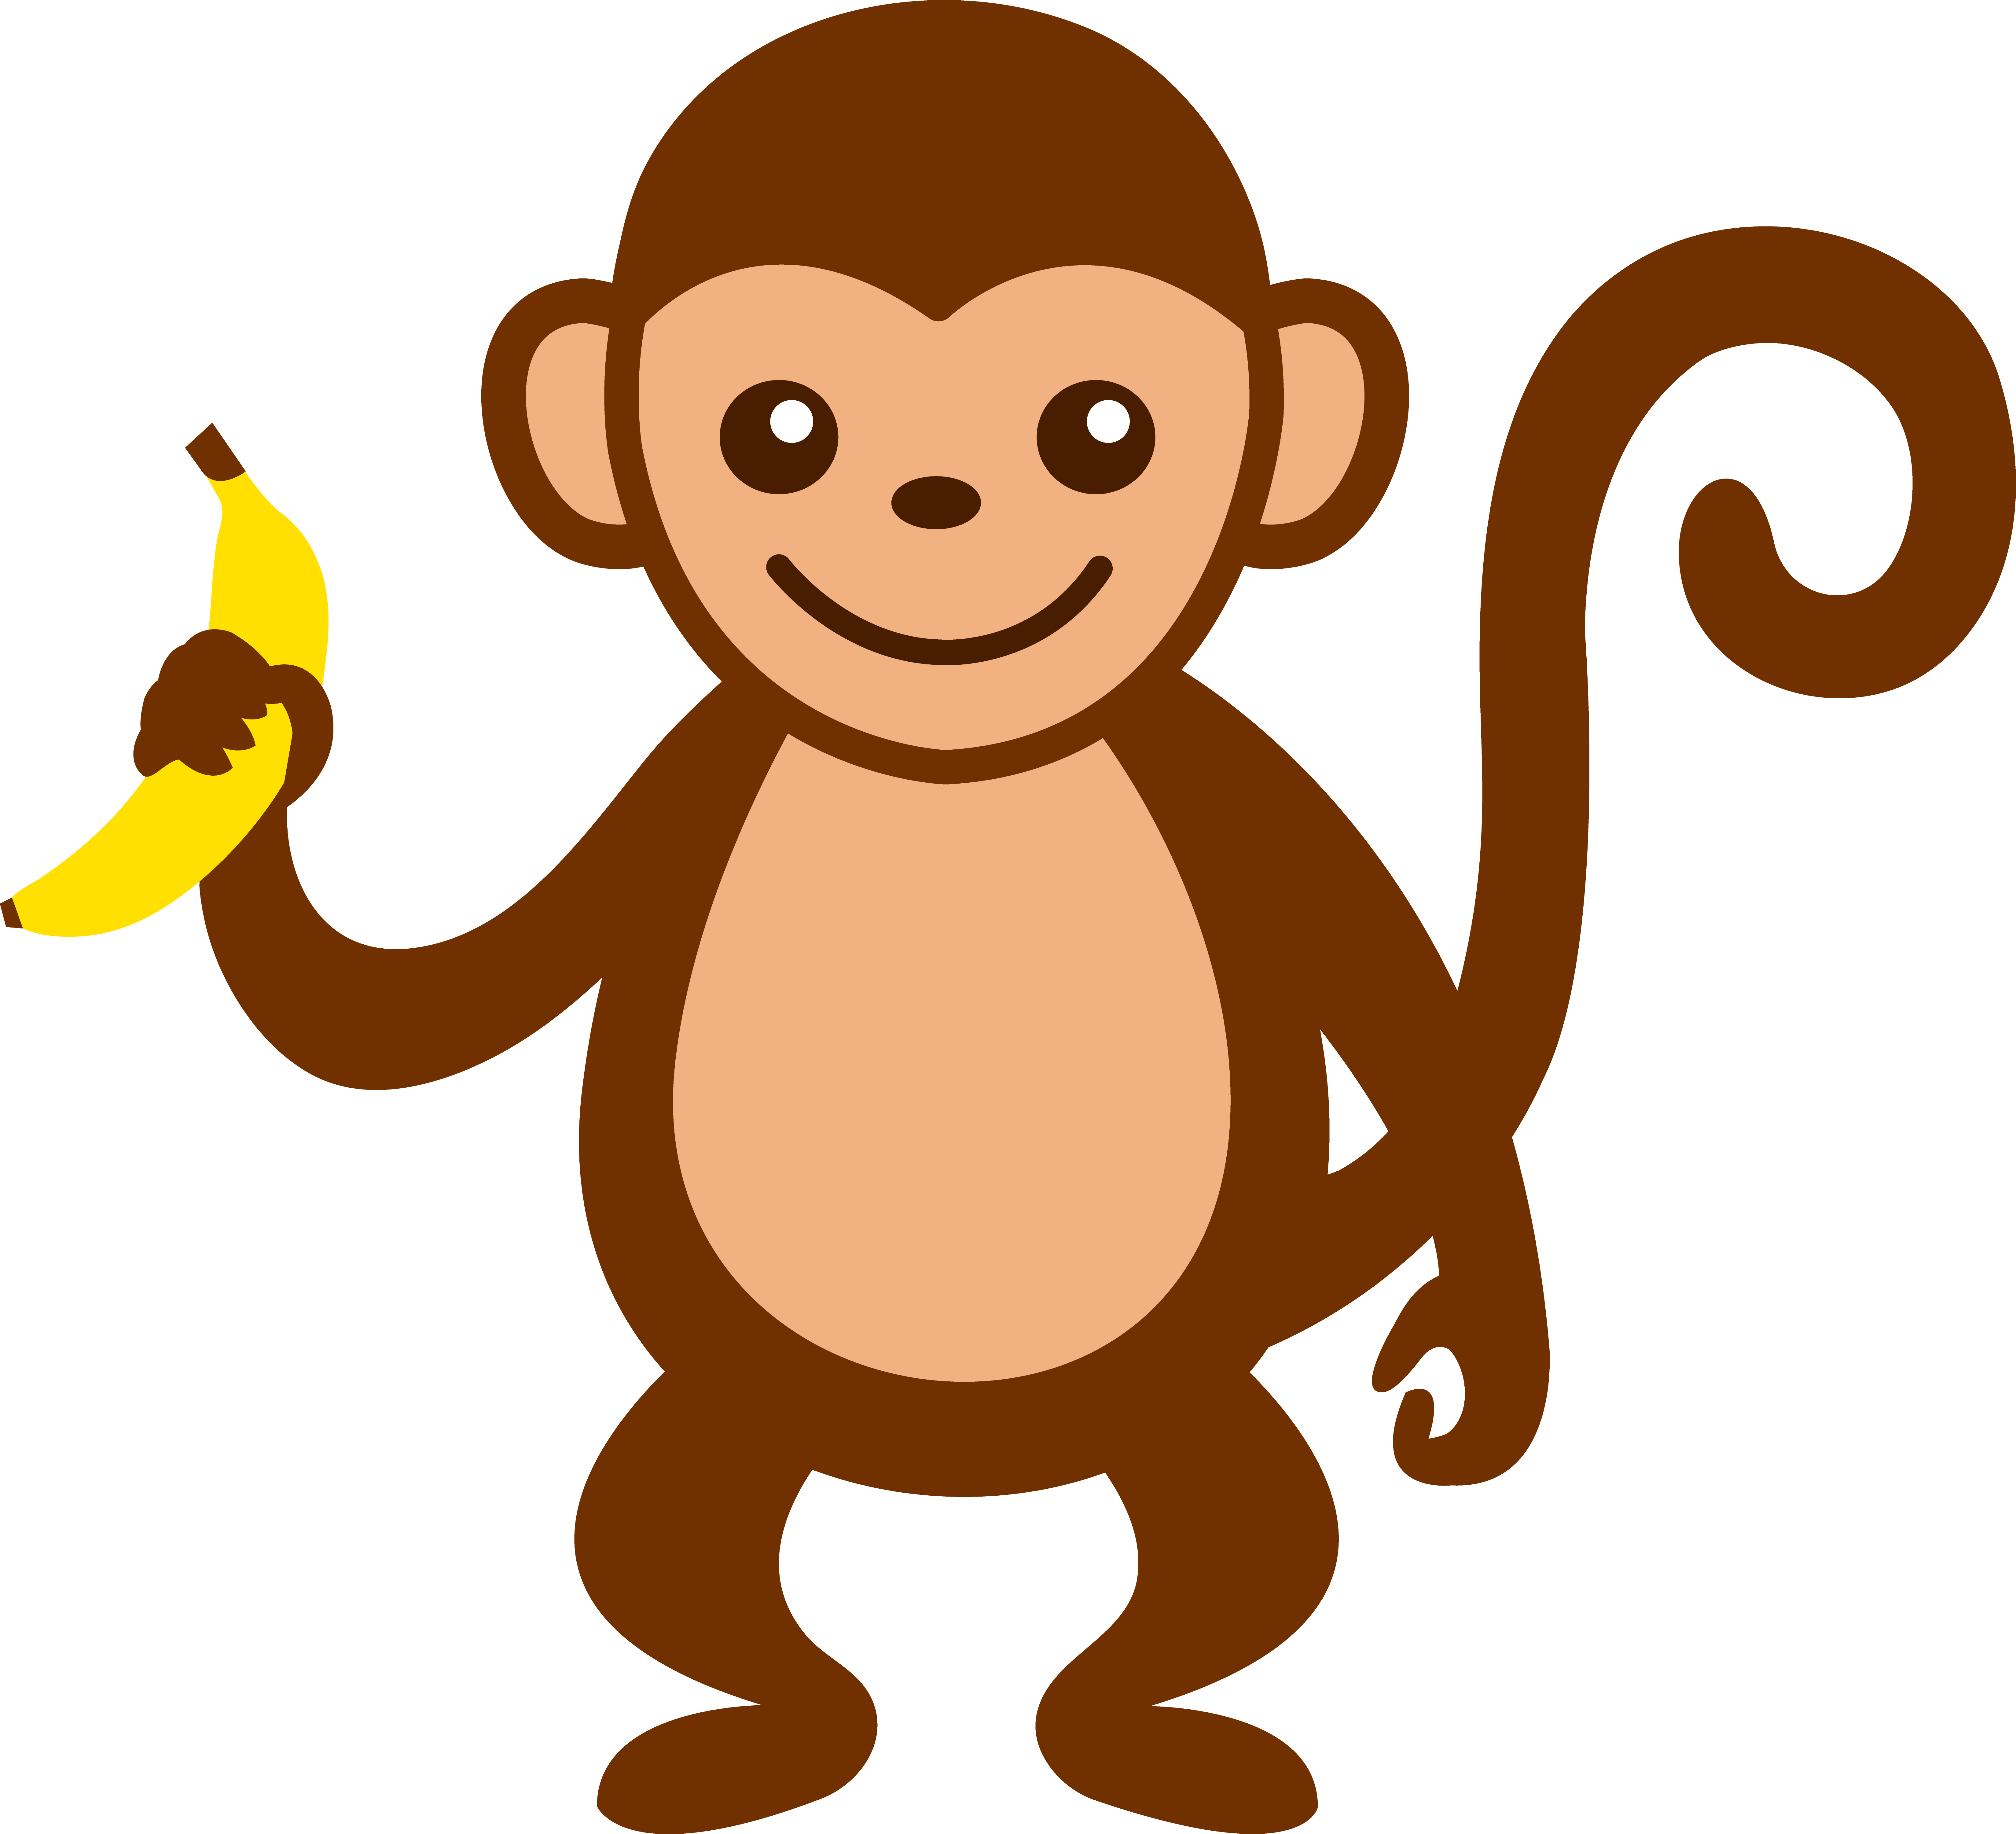 Monkey in tree clipart picture transparent library cartoon monkey clip art | Cute Monkey With Banana - Free Clip Art ... picture transparent library